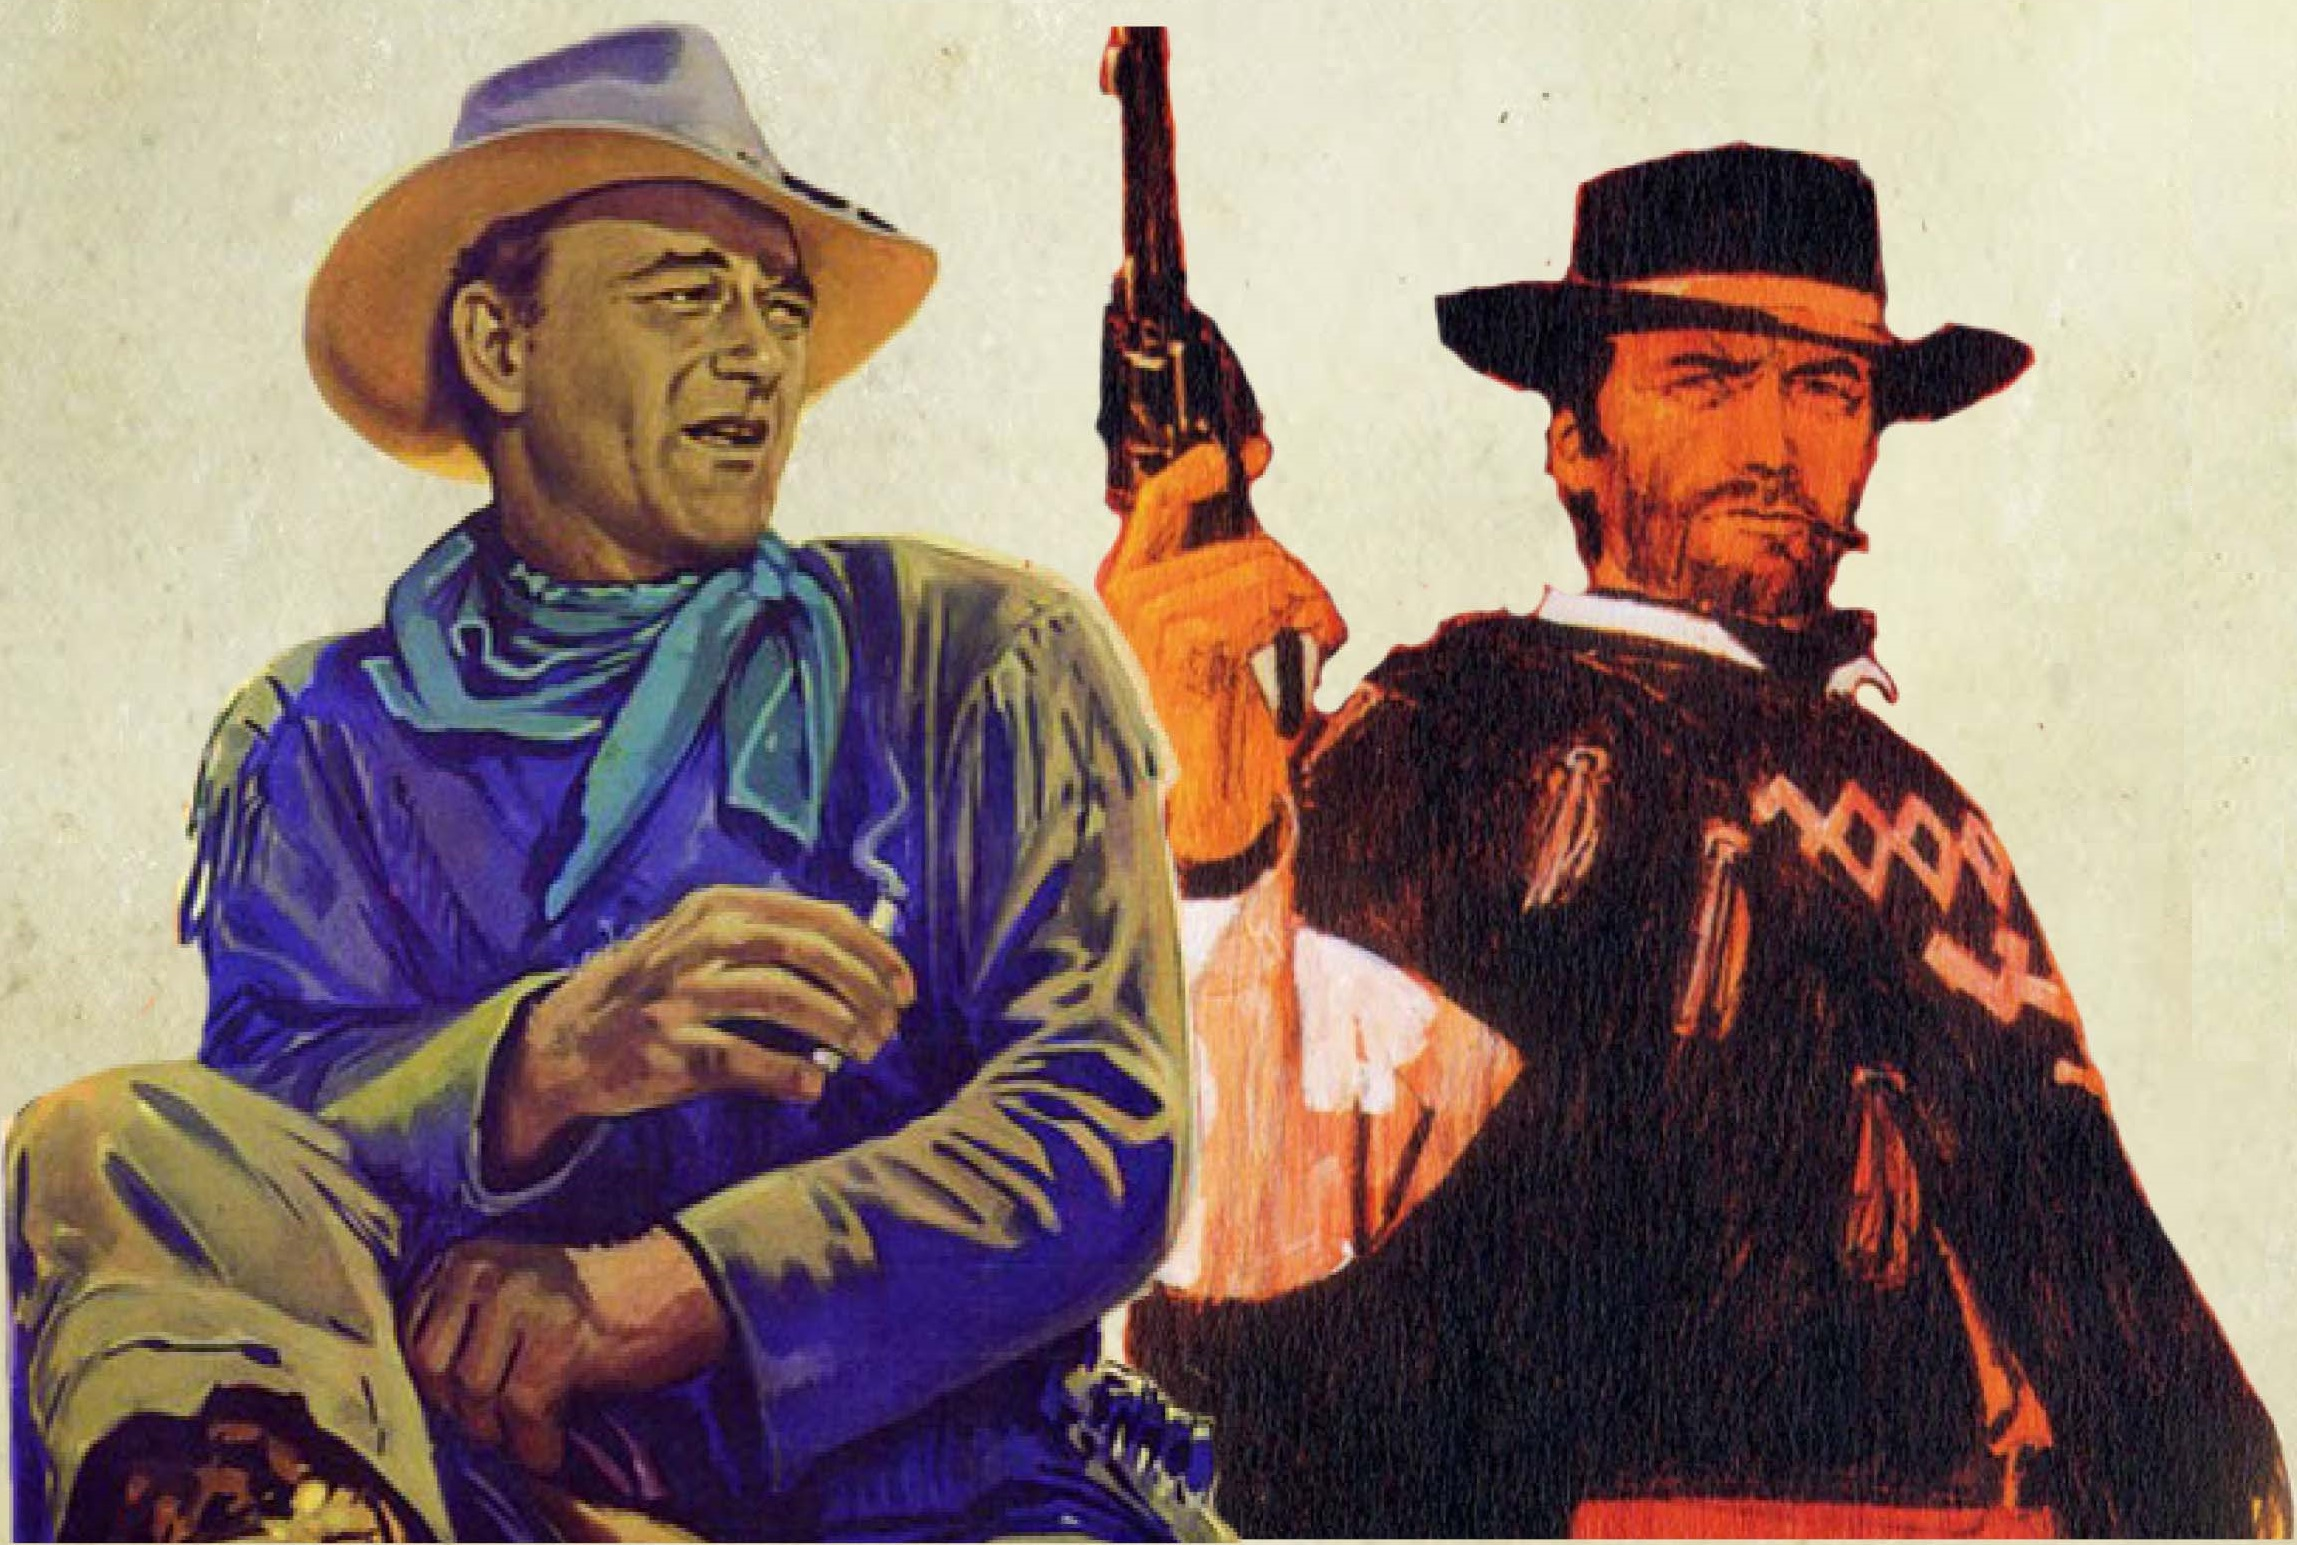 Clinton 'Clint' Eastwood vs John 'The Duke' Wayne